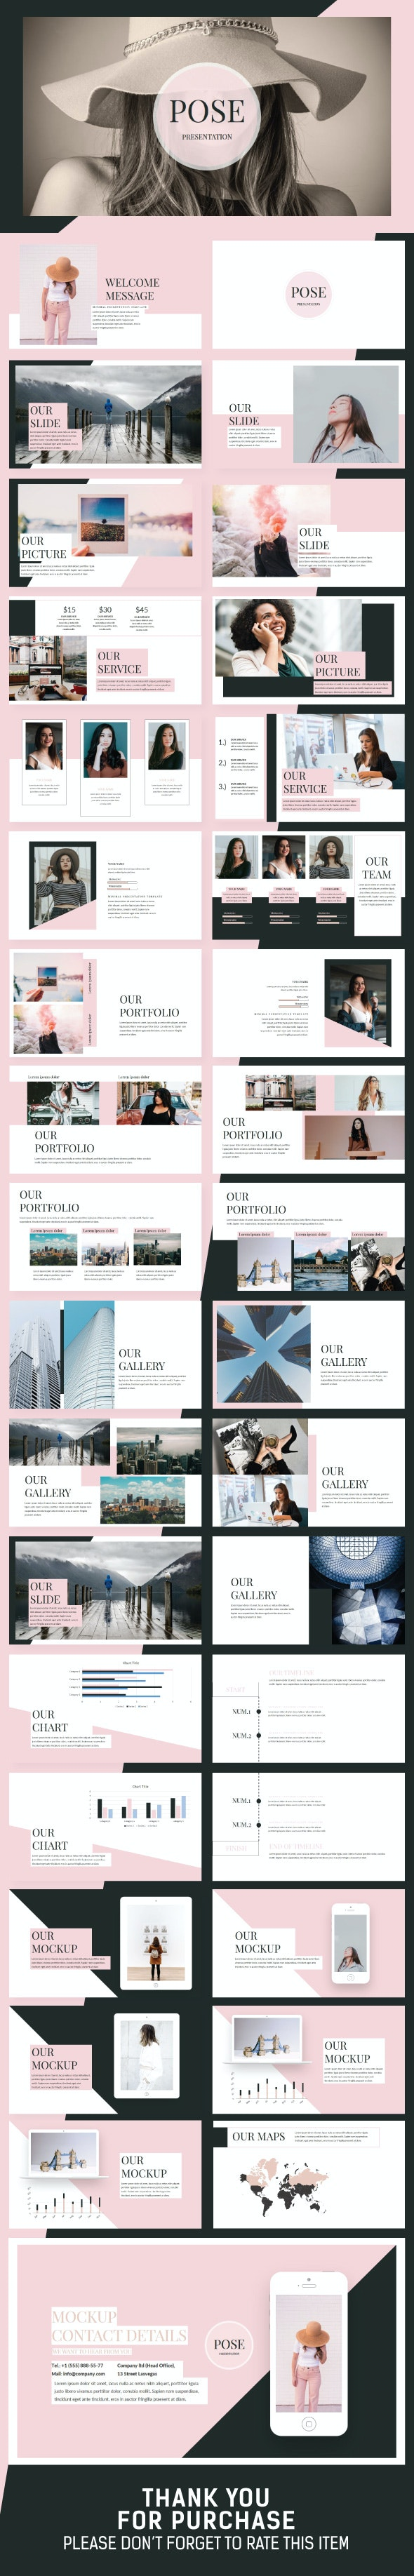 Pose Minimal Google Slides Template